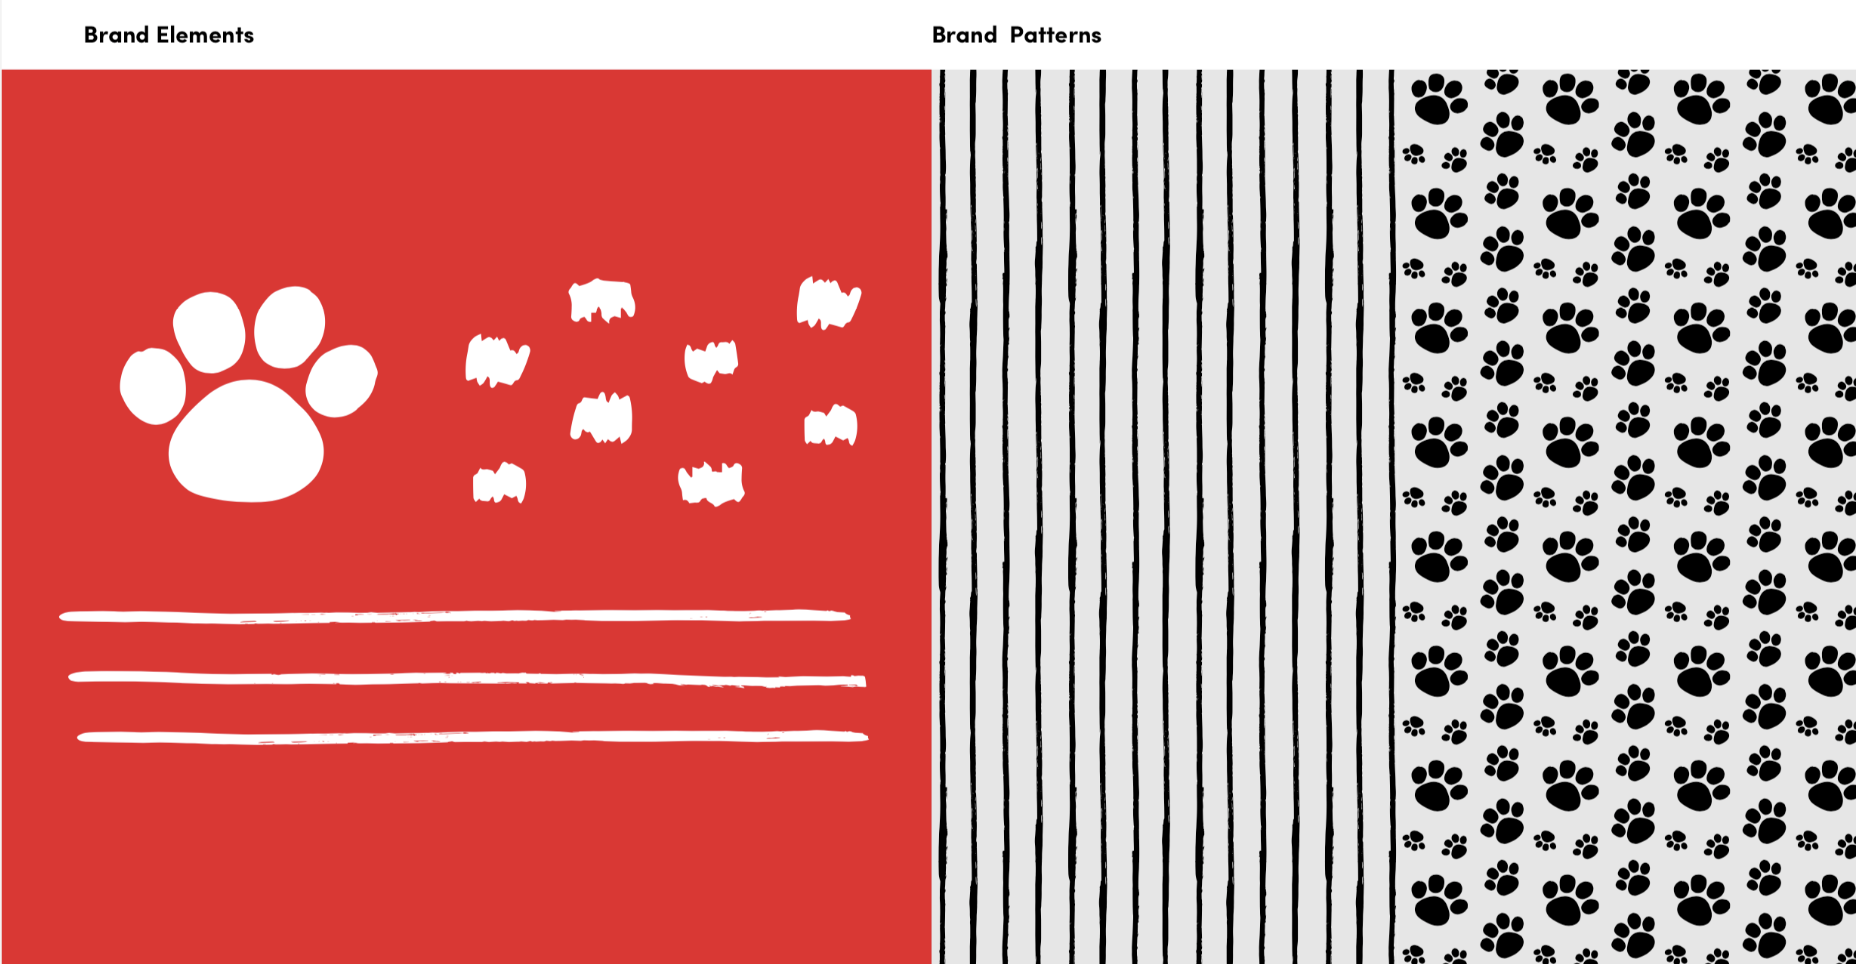 red and black and white stripe patterns